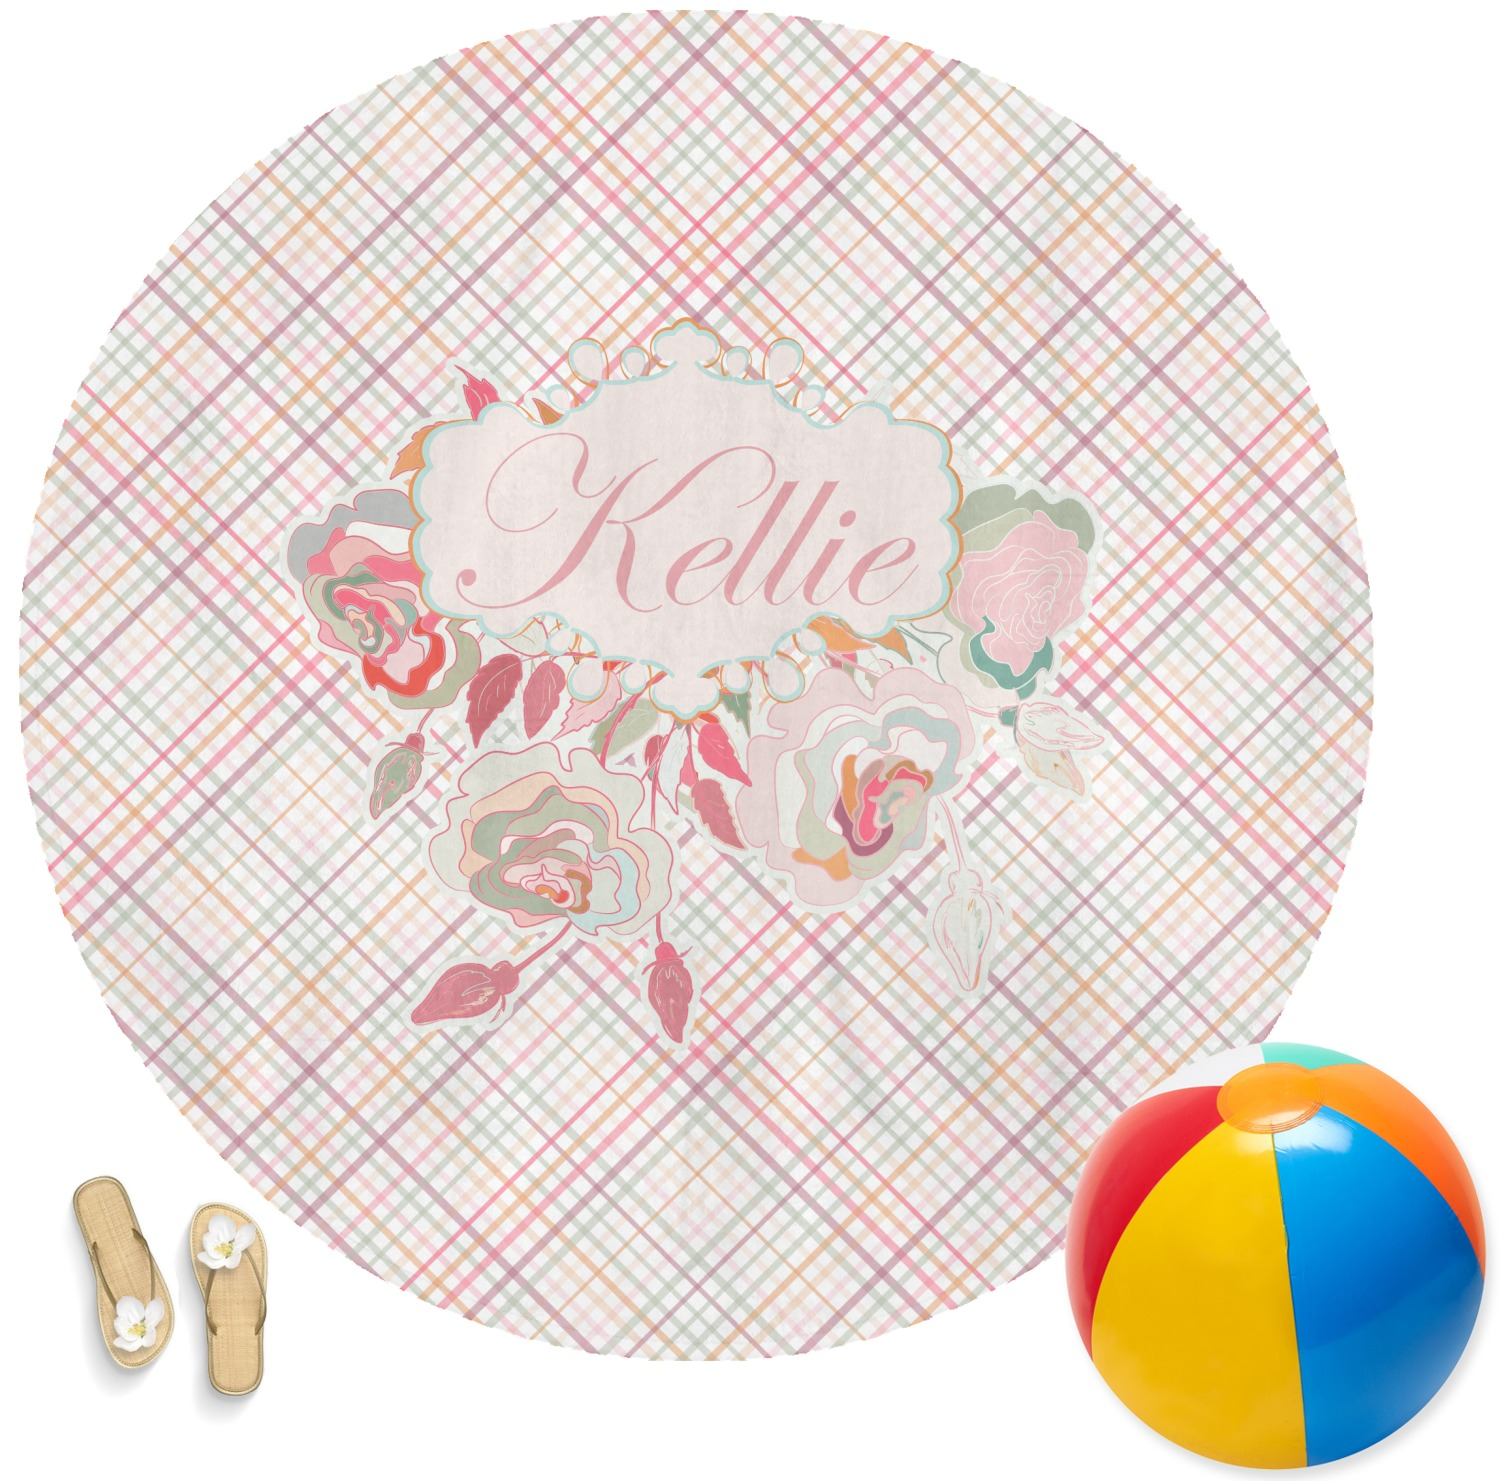 Modern Plaid Amp Floral Round Beach Towel Personalized